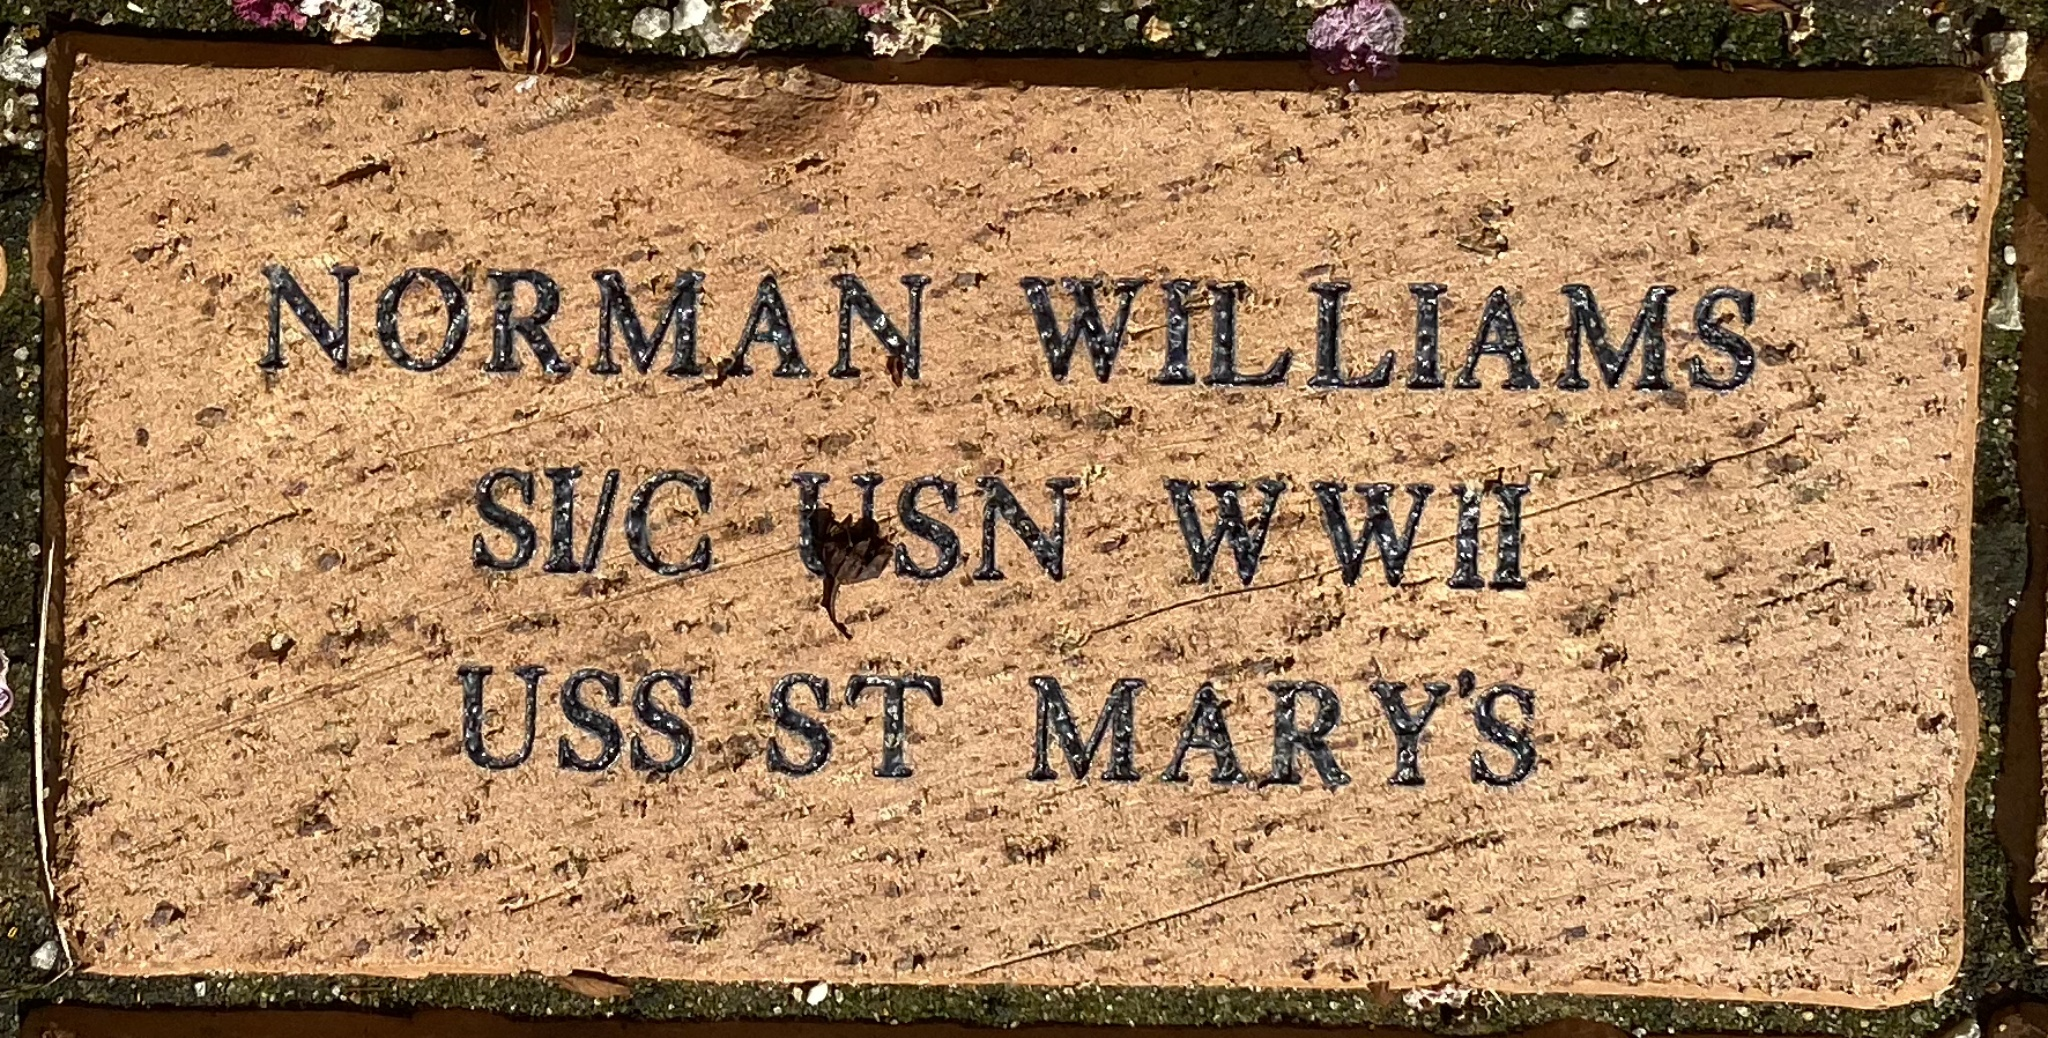 NORMAN WILLIAMS SI/C USN WWII USS ST MARY'S